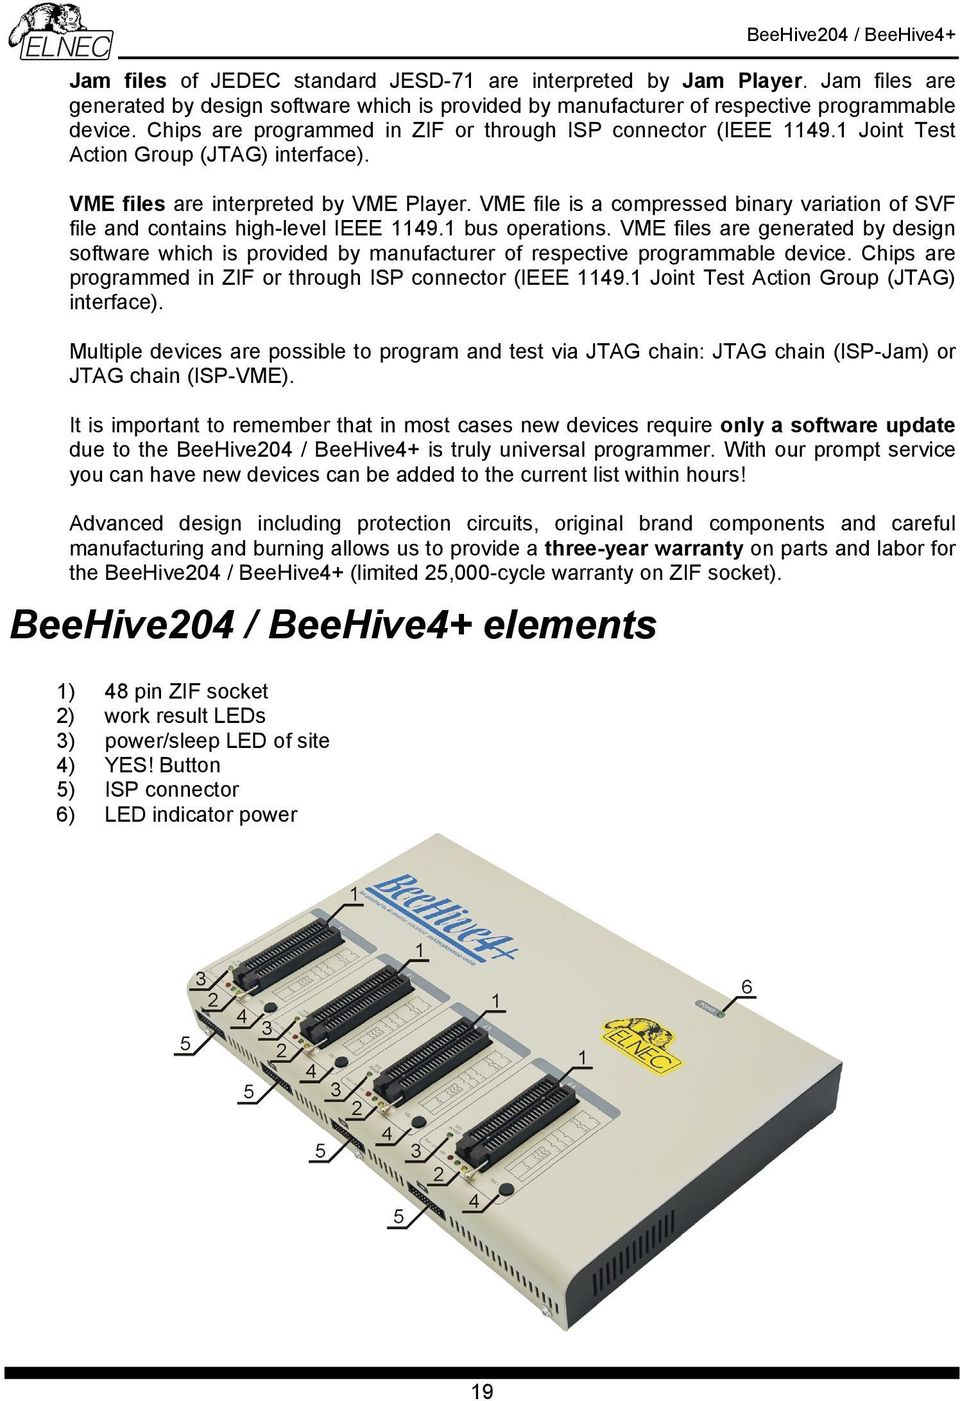 Beehive204 Very Fast Universal 4x 48 Pindrive Concurrent Isp Pc Software For Programming This At89s51 52 Microcontroller Can Be 1 Joint Test Action Group Jtag Interface Vme Files Are Interpreted By